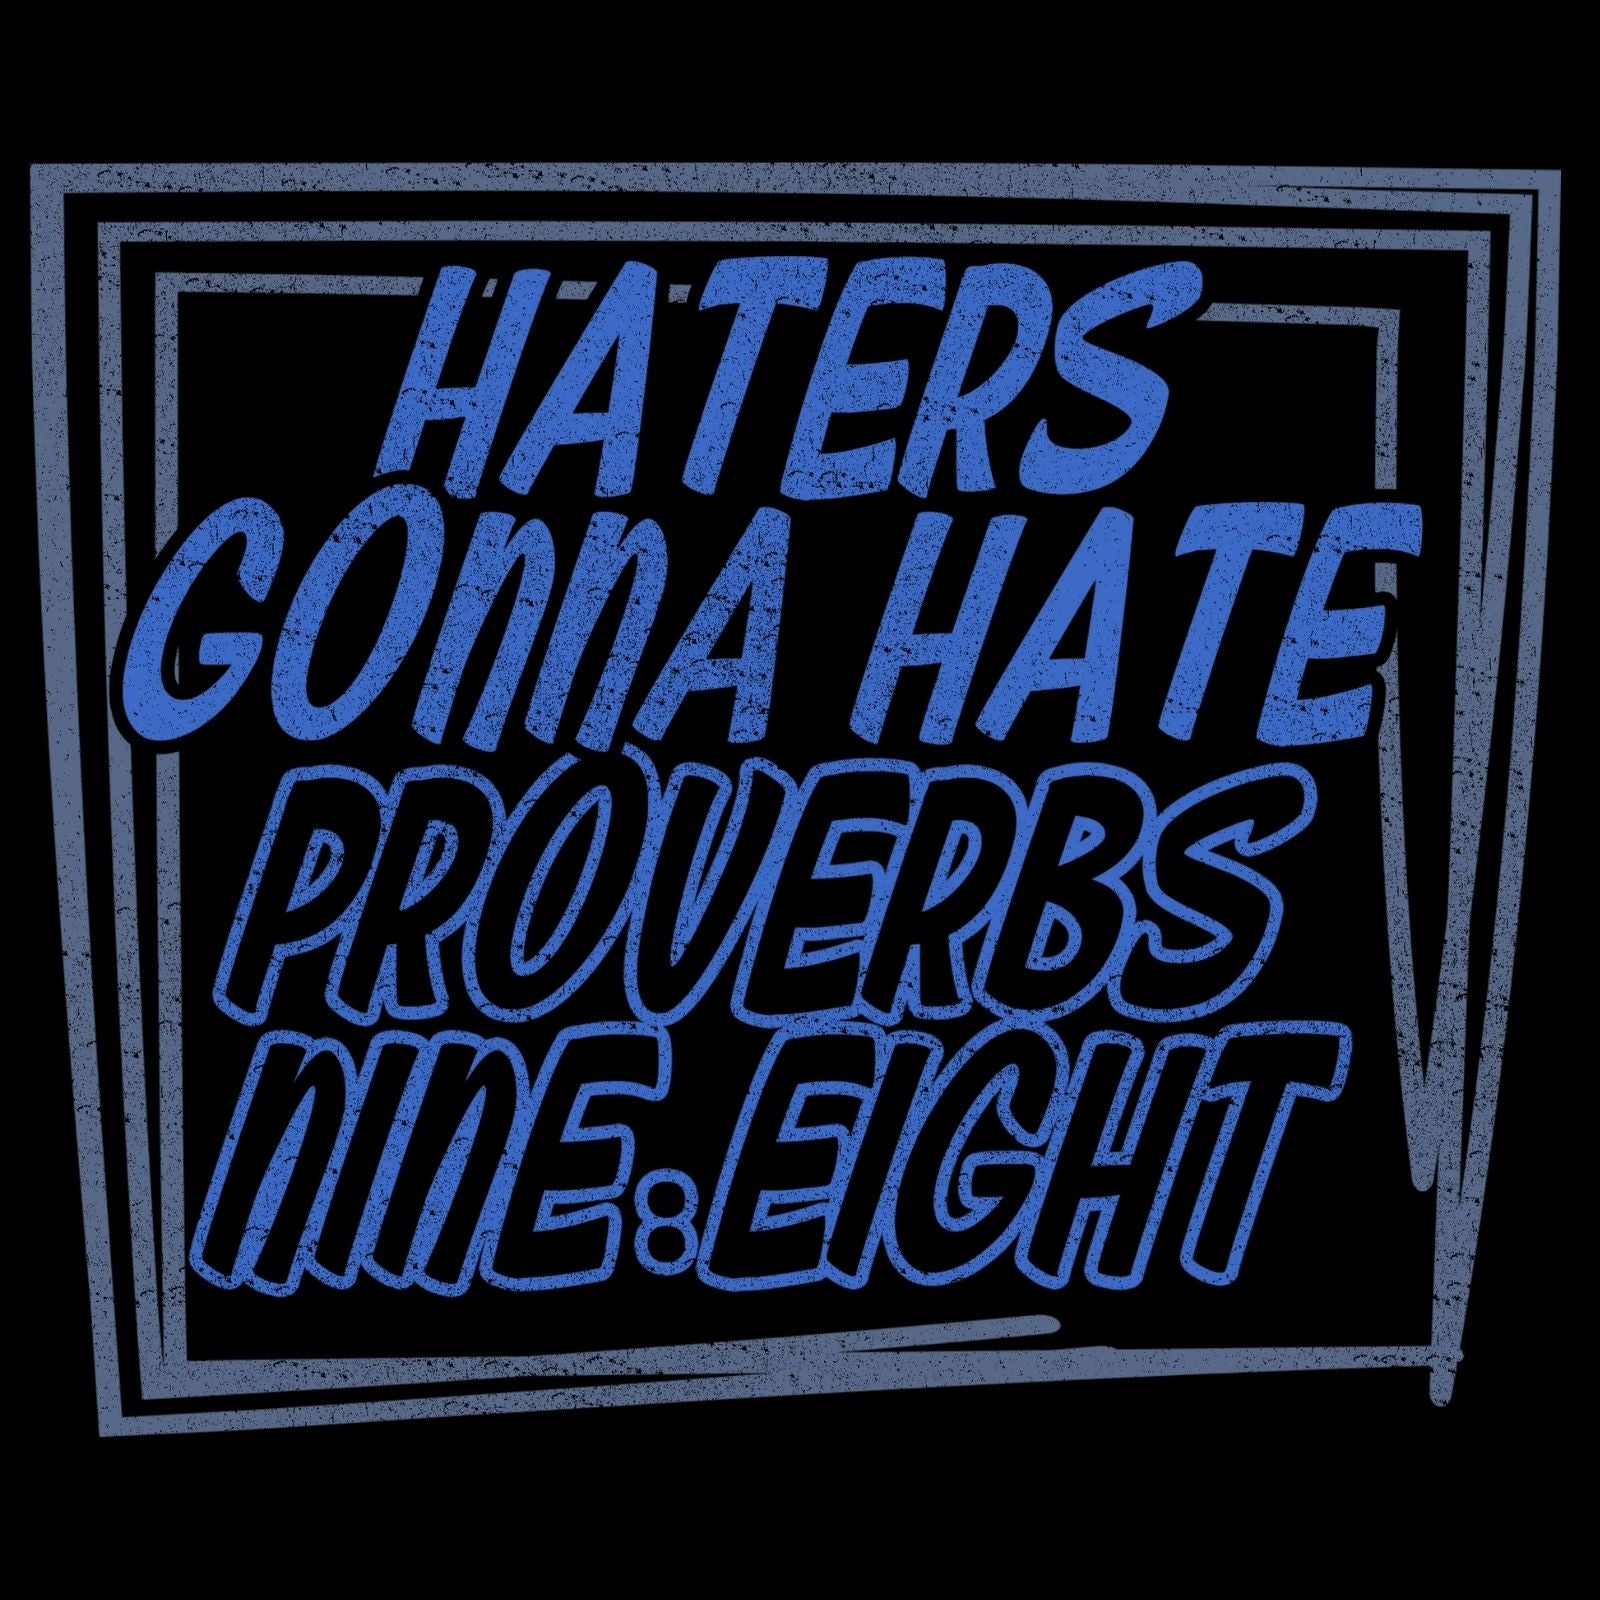 Haters Gonna Hate Proverbs Nine:Eight - Bastard Graphics